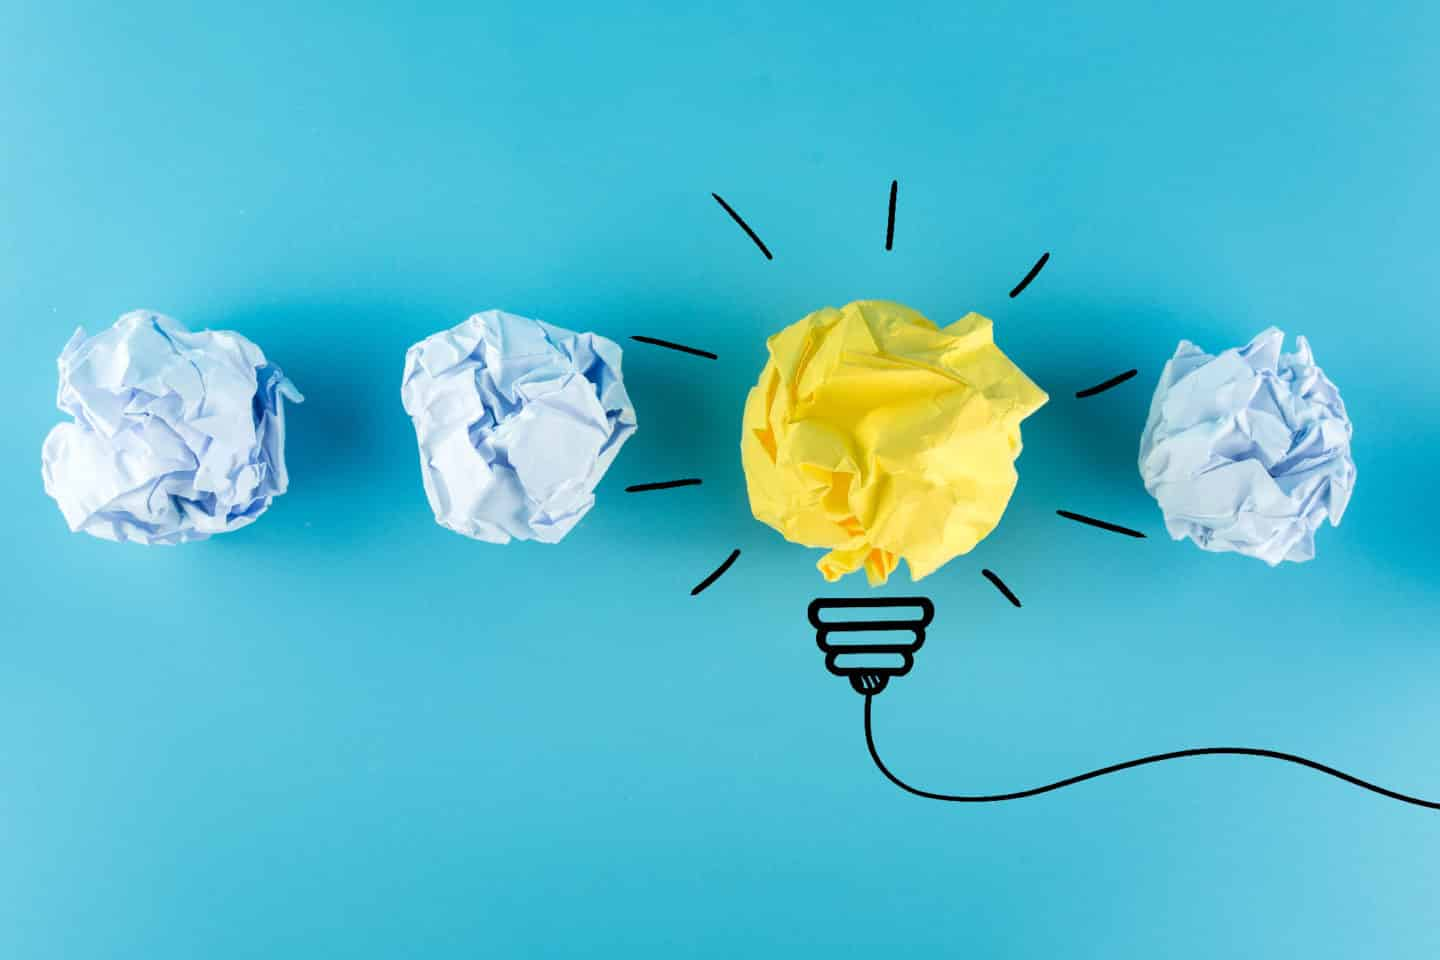 10 innovative ideas for employee recognition that organizations should consider